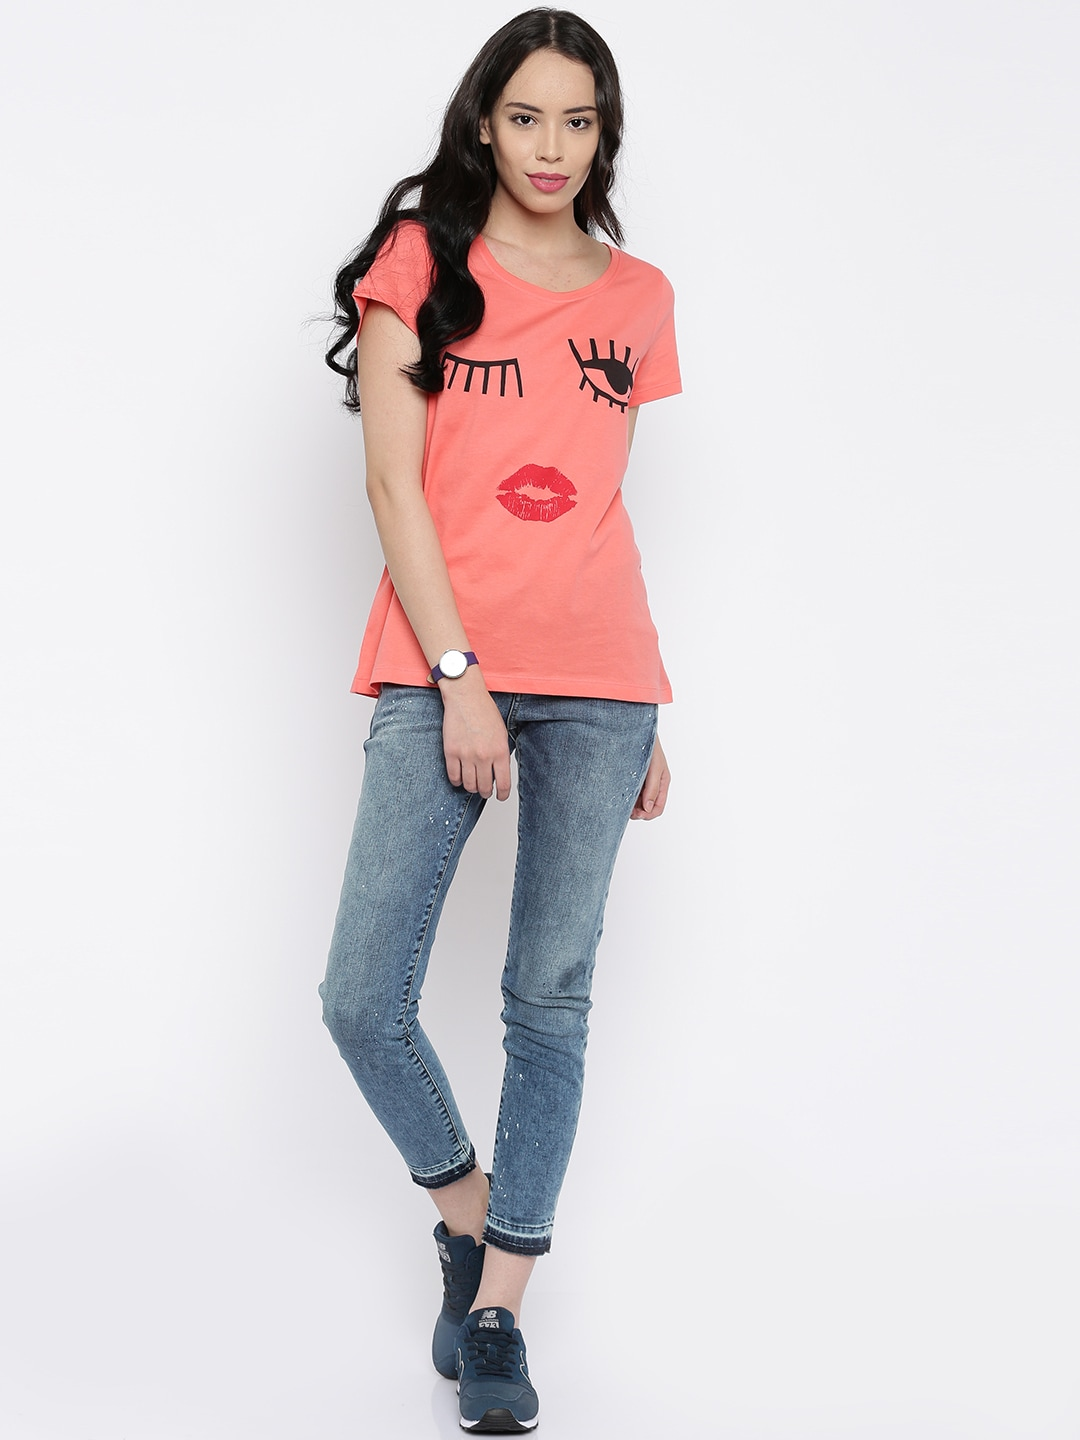 Low Waist Jeans Buy Low-rise Jeans Online in India Myntra